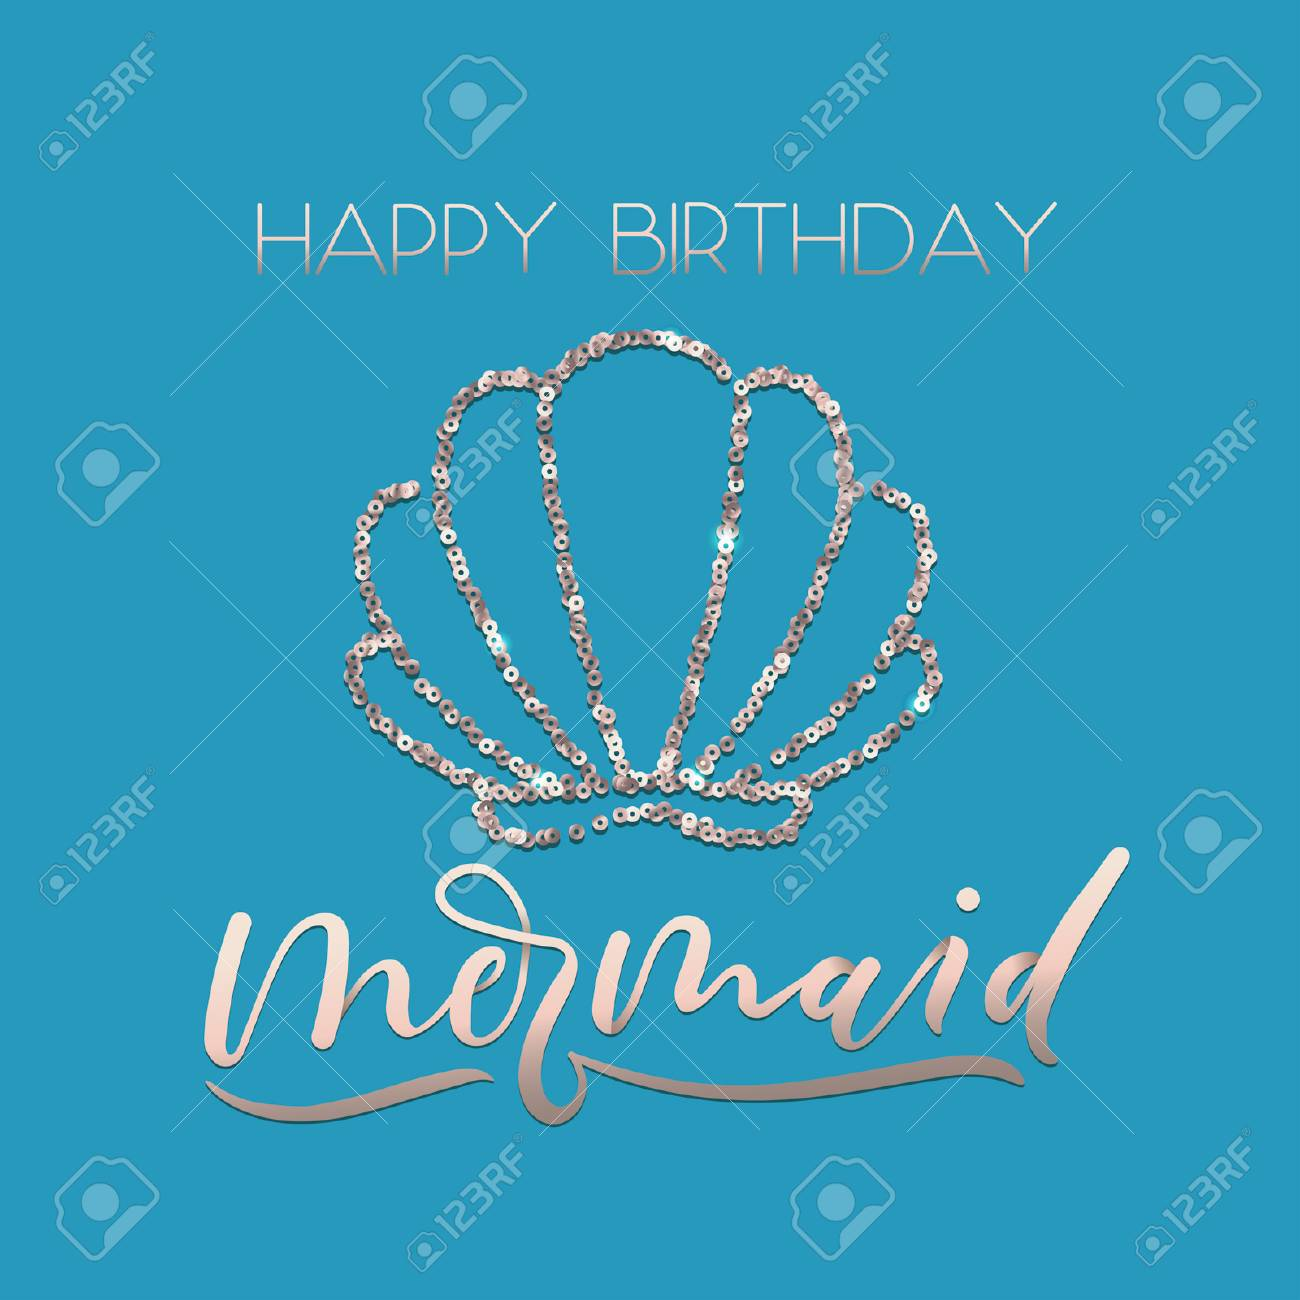 Happy Birthday Mermaid Greeting Card Set With Sparkle Rose Gold Seashell And Lettering Scale